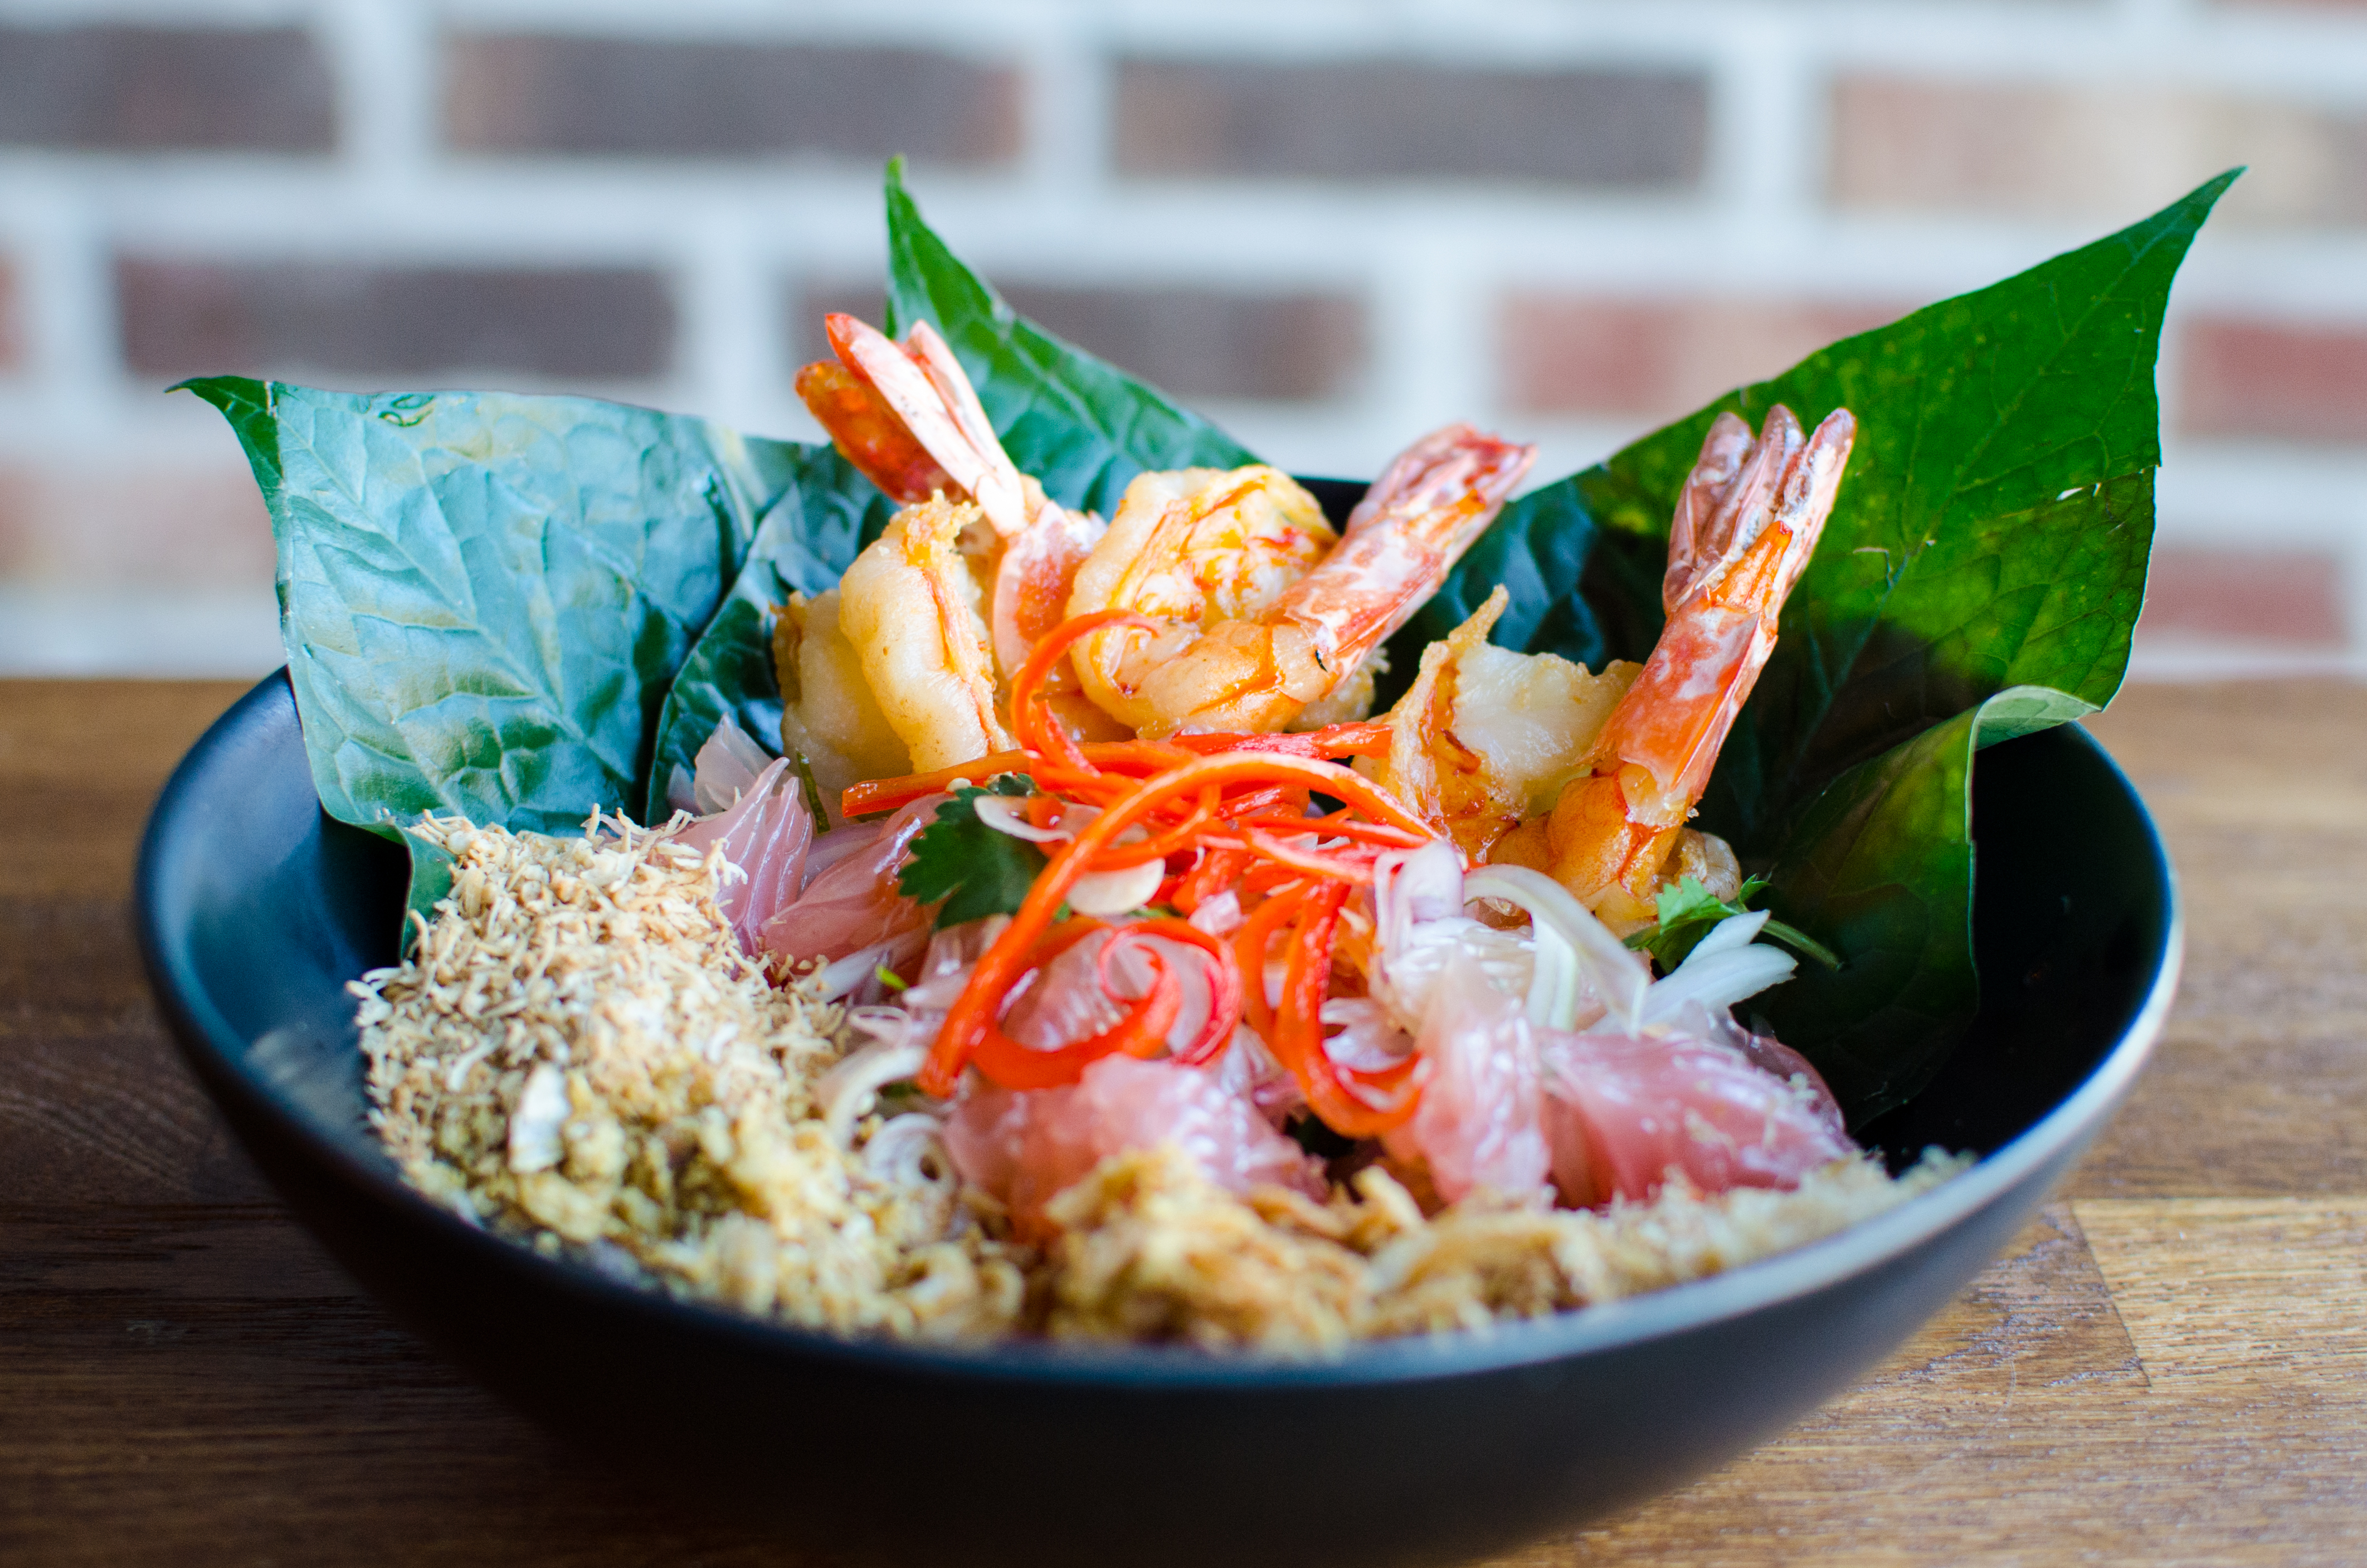 A Thai pomelo salad with shrimp, betel leaves, thinly sliced red chile, and a variety of crispy condiments sits in a black bowl on a wooden table in front of a brick background